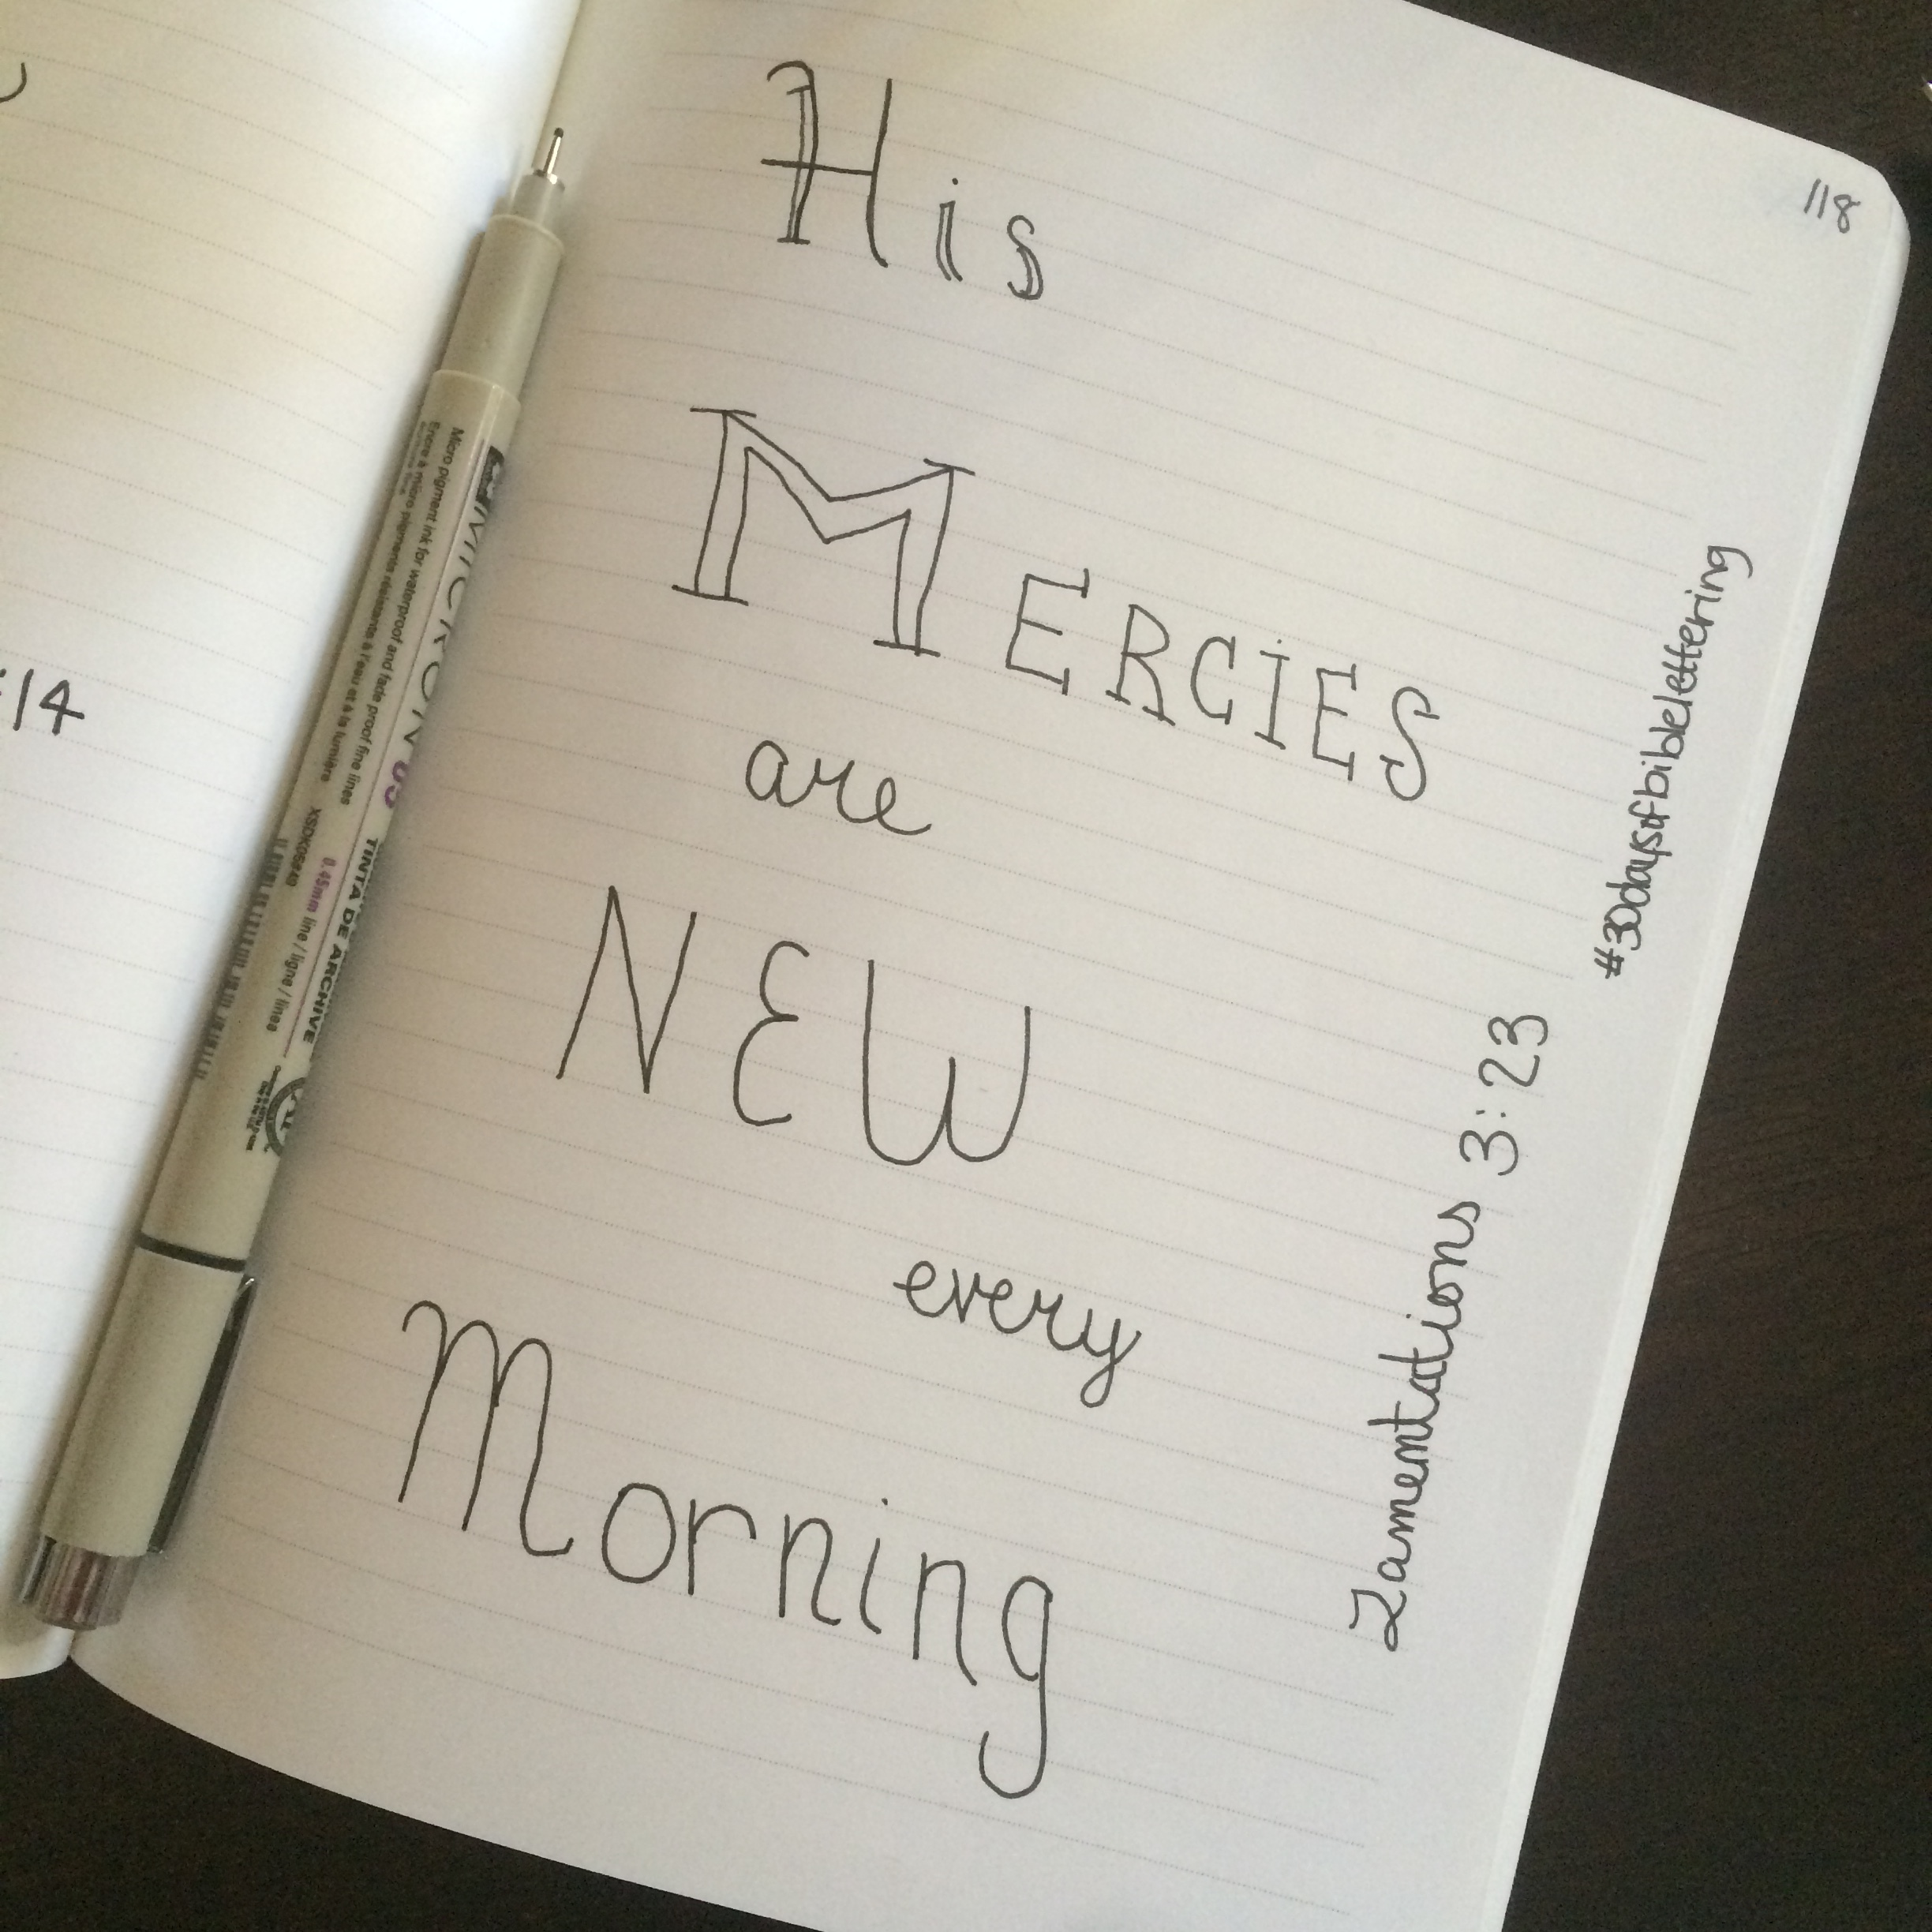 Lamentations 3:23 was the verse for day four! In line with taking this lightly, I skipped days two and three!